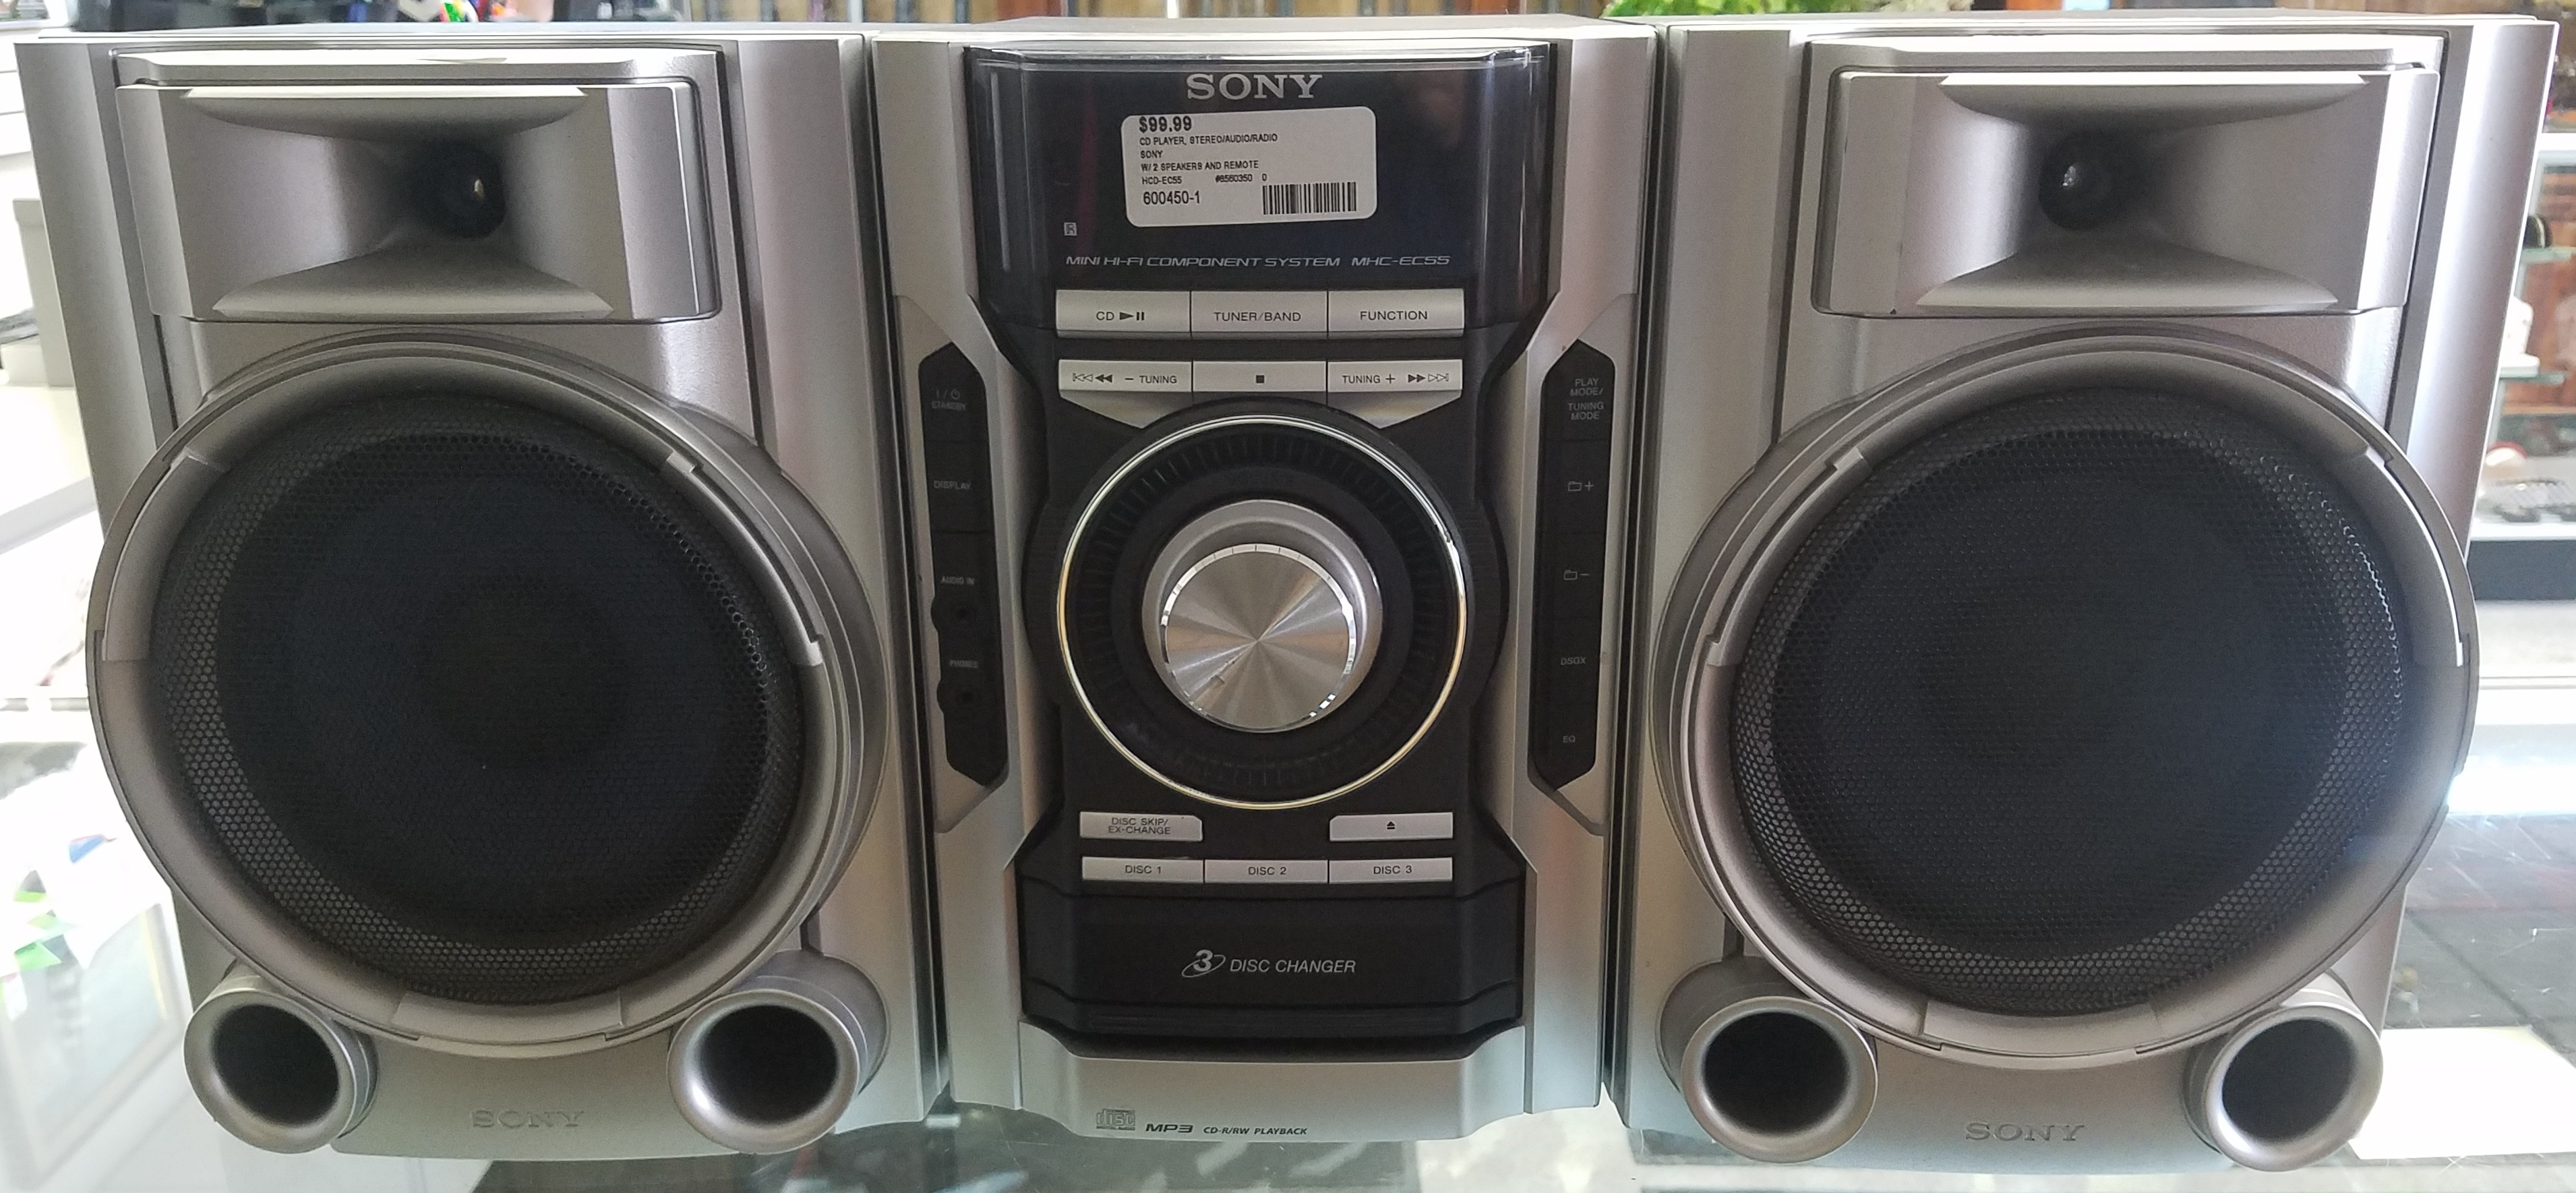 SONY CD PLAYER STEREO/AUDIO/RADIO